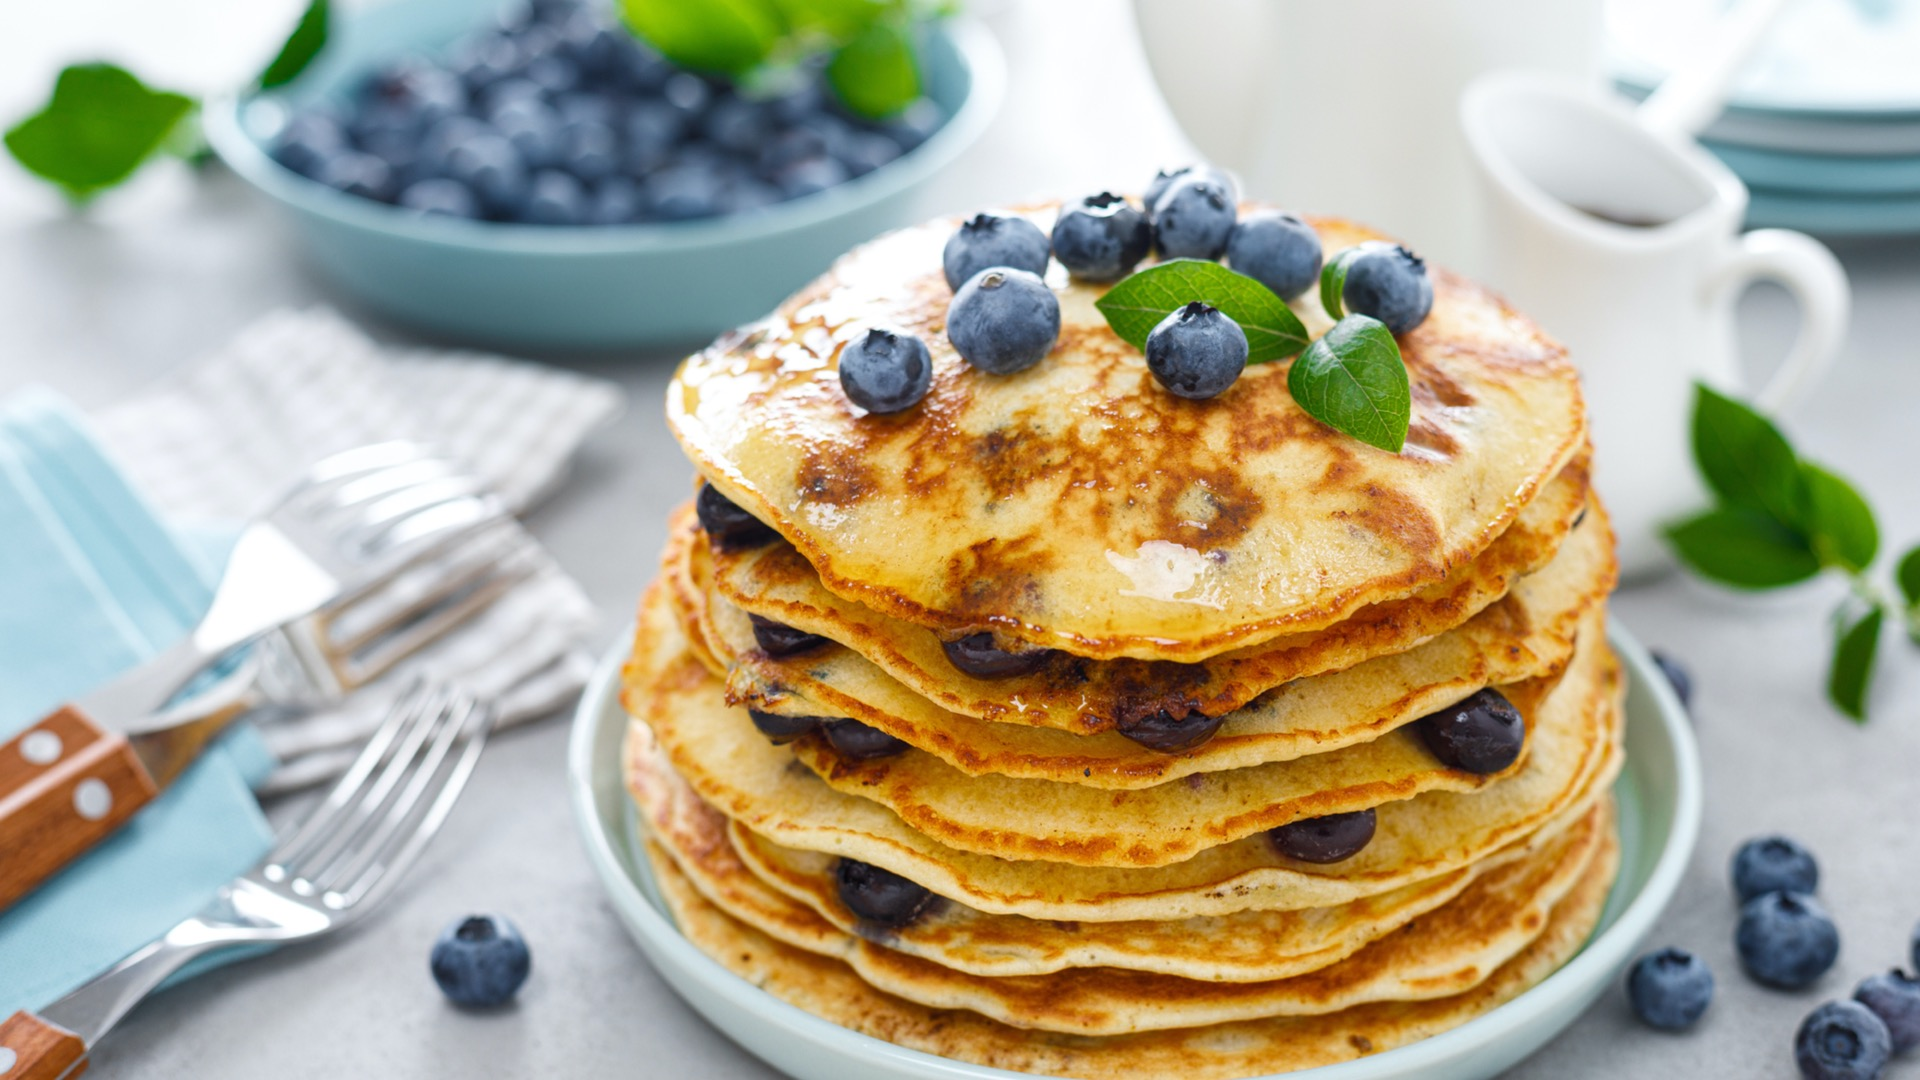 A stack of blueberry pancakes from an Ellicott City restaurant